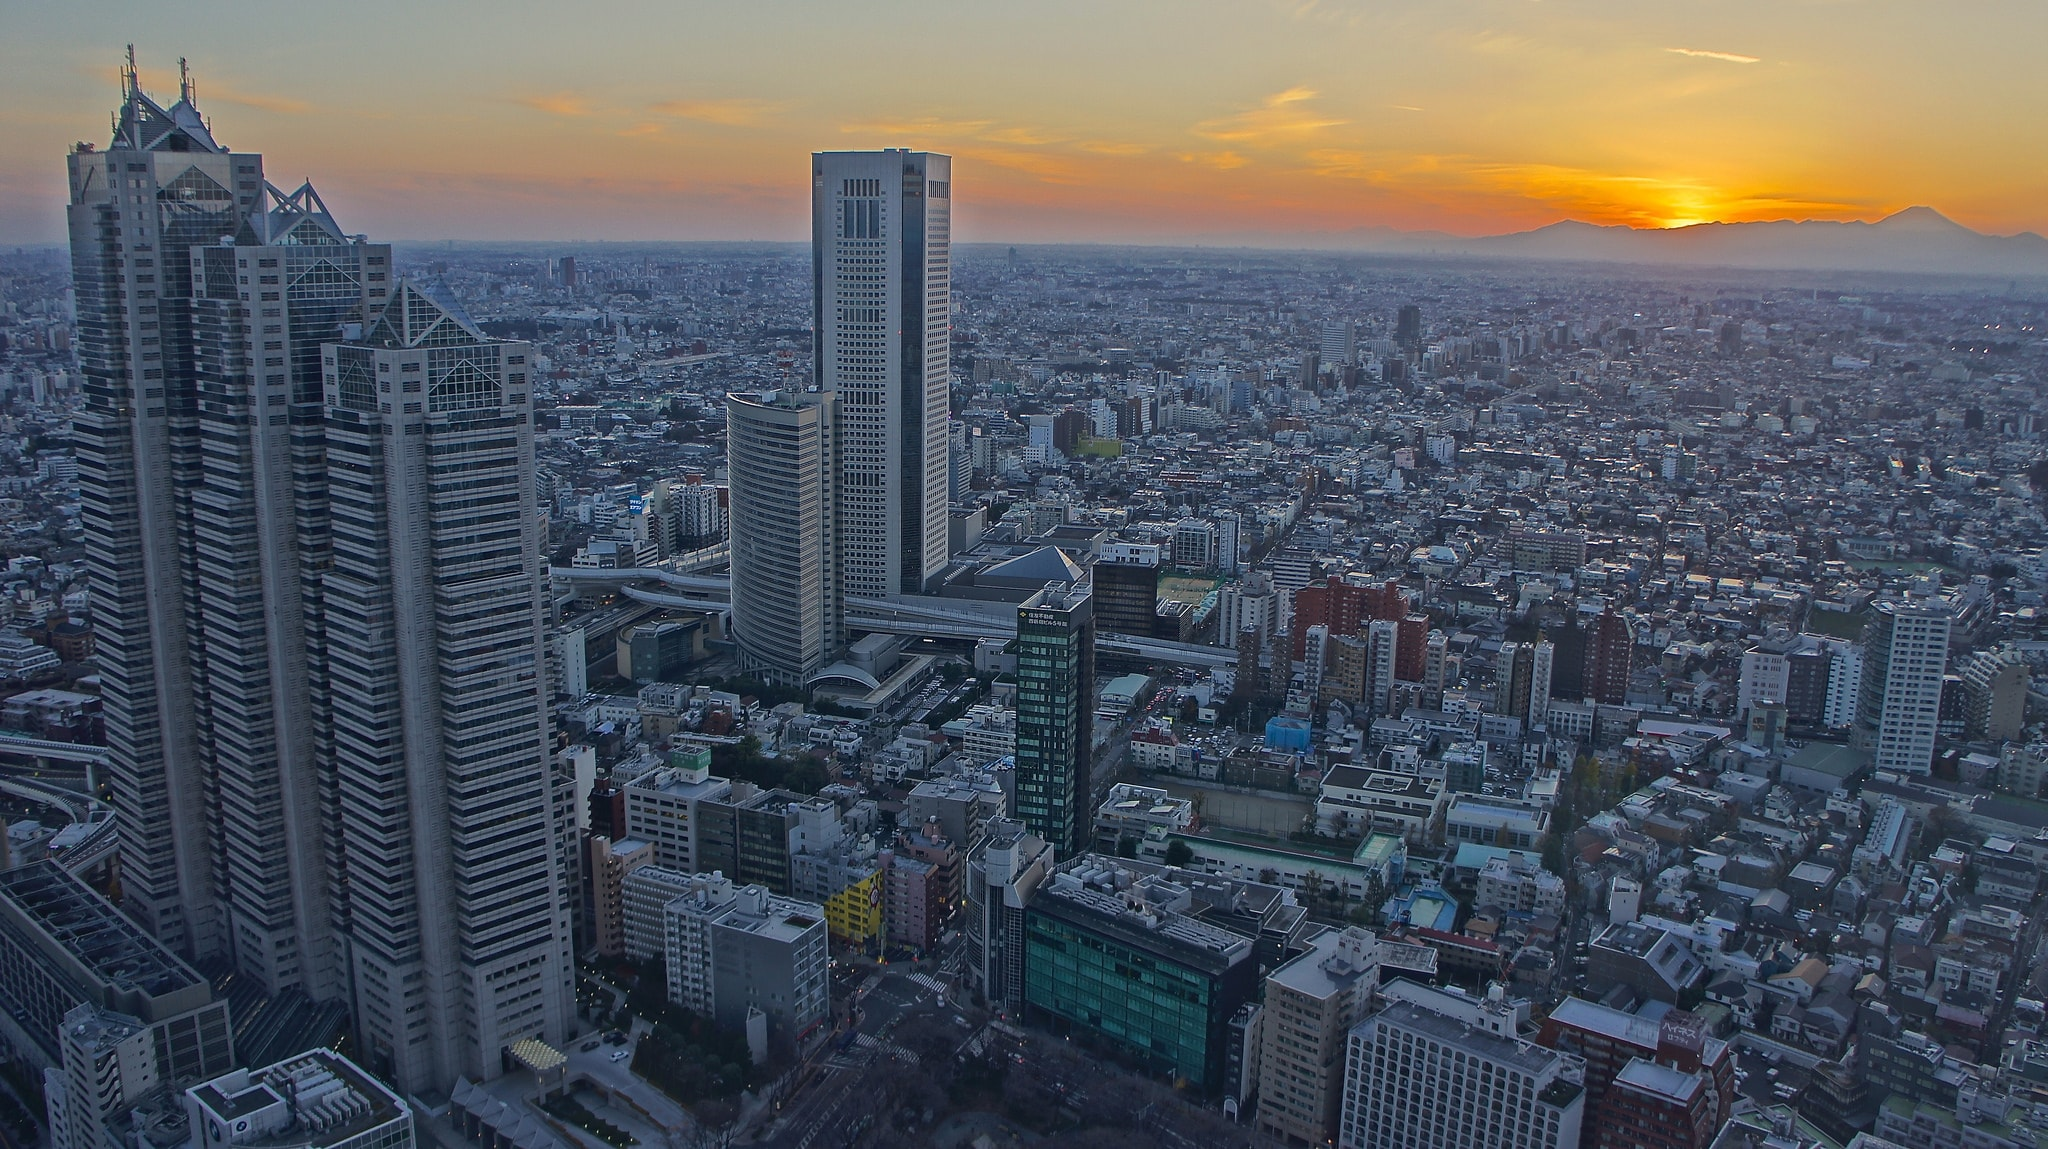 Evening View From The Tokyo Metropolitan Government Buildings North Tower  Observatory | © Manish Prabhune / Flickr